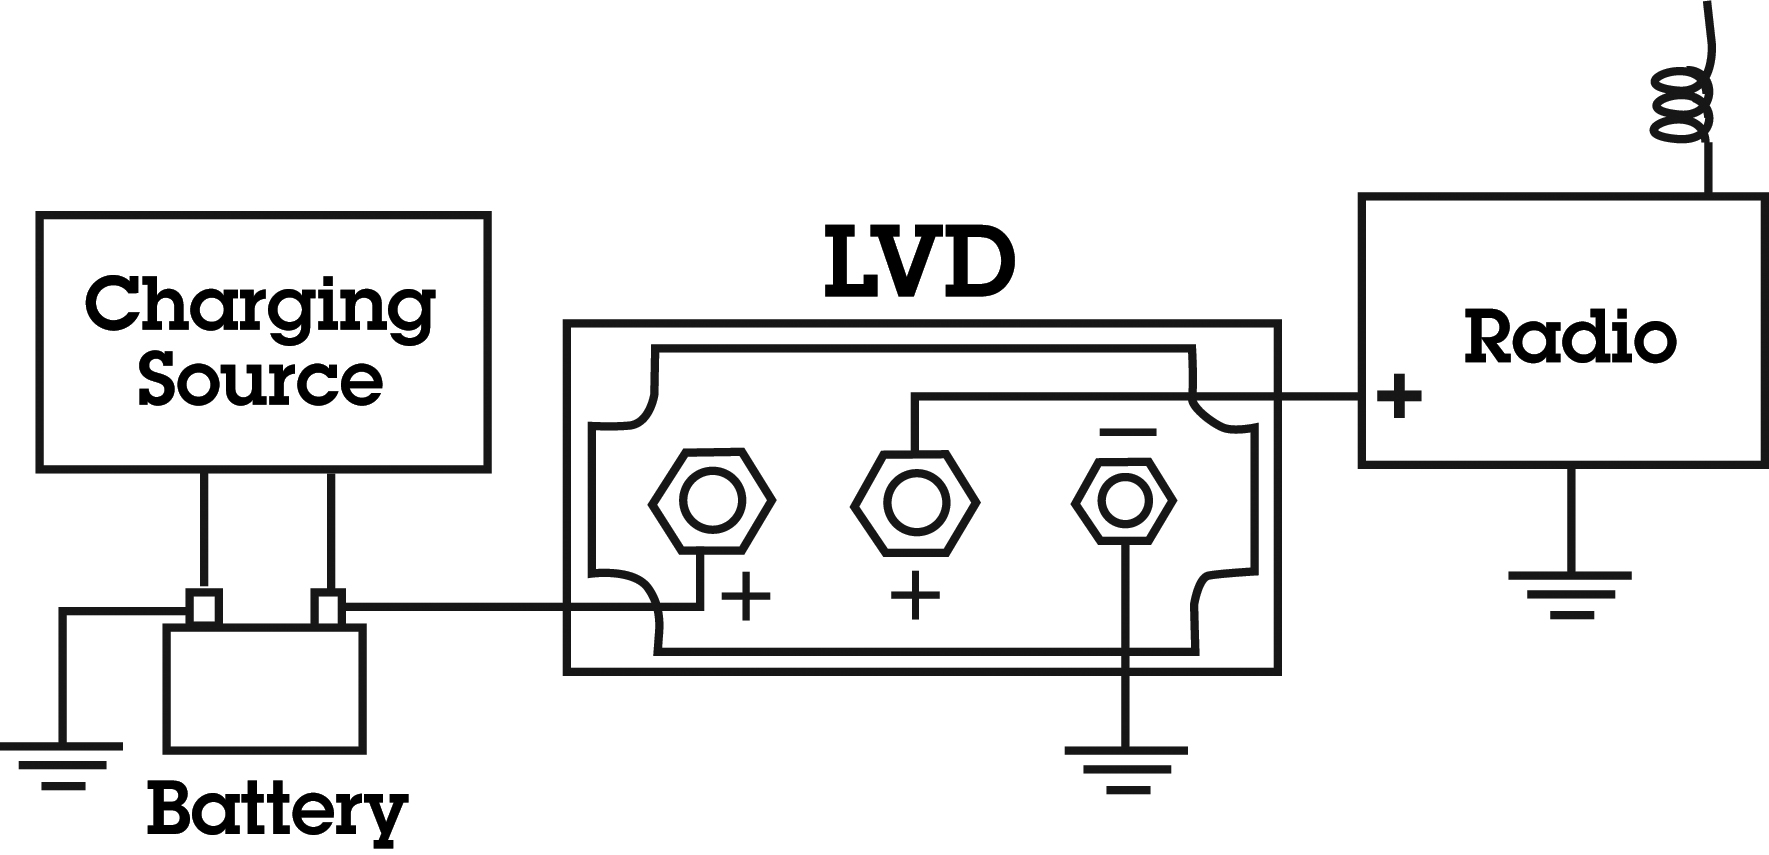 hight resolution of lvd typical installation